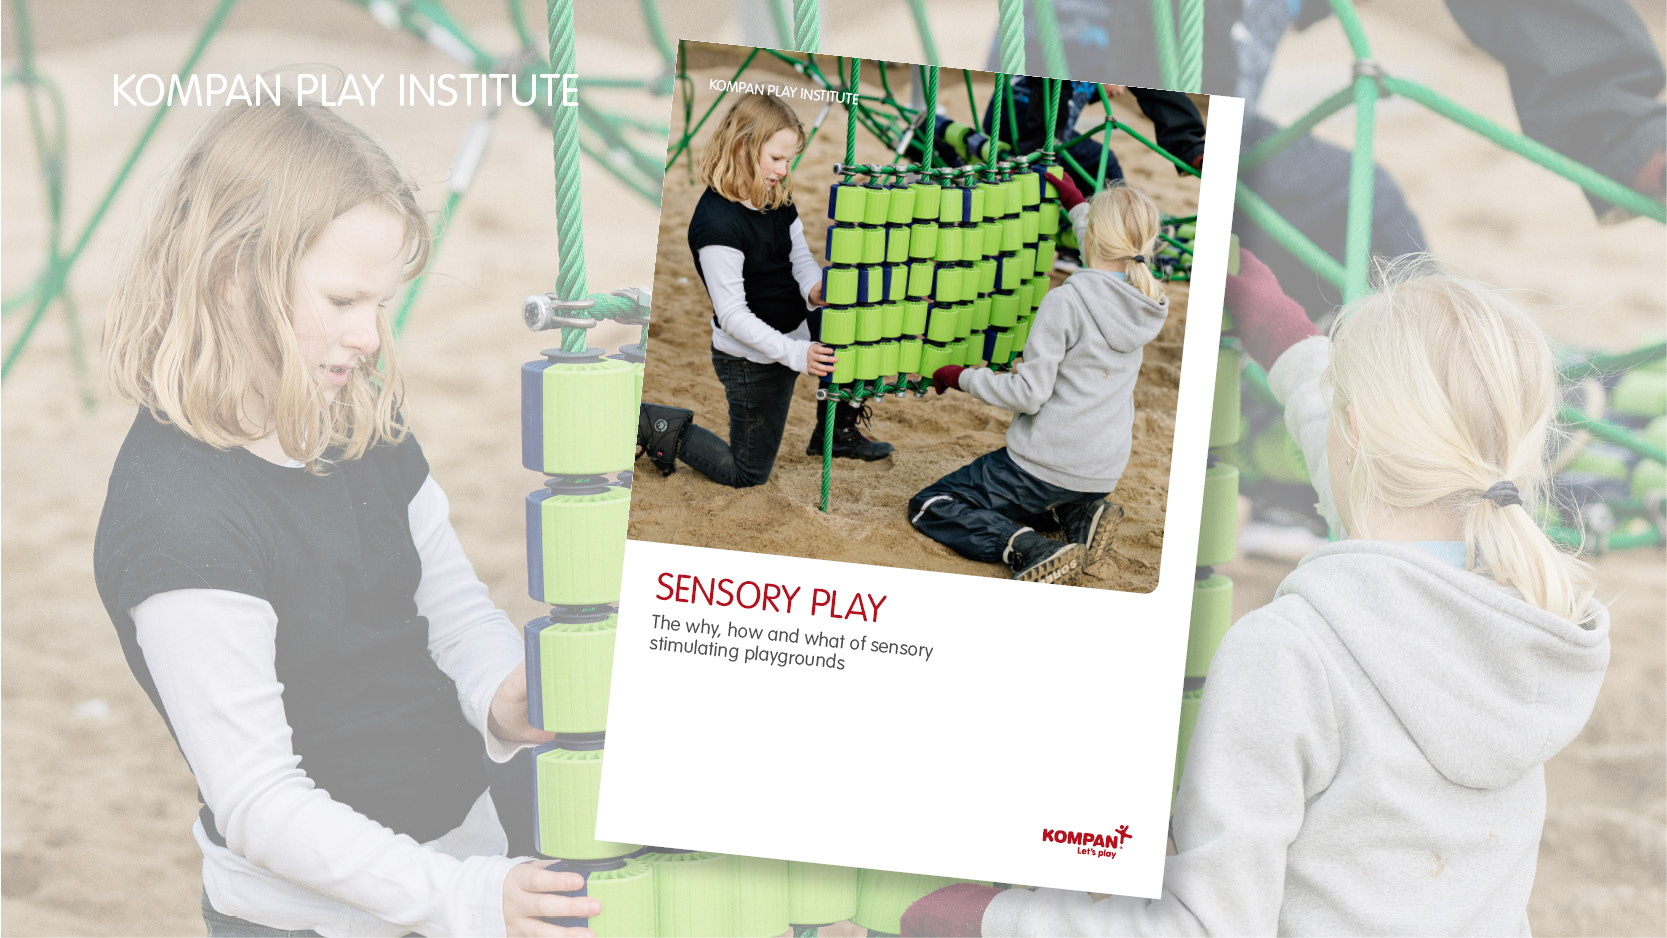 Sensory Play: The why, how and what of sensory stimulating playgrounds